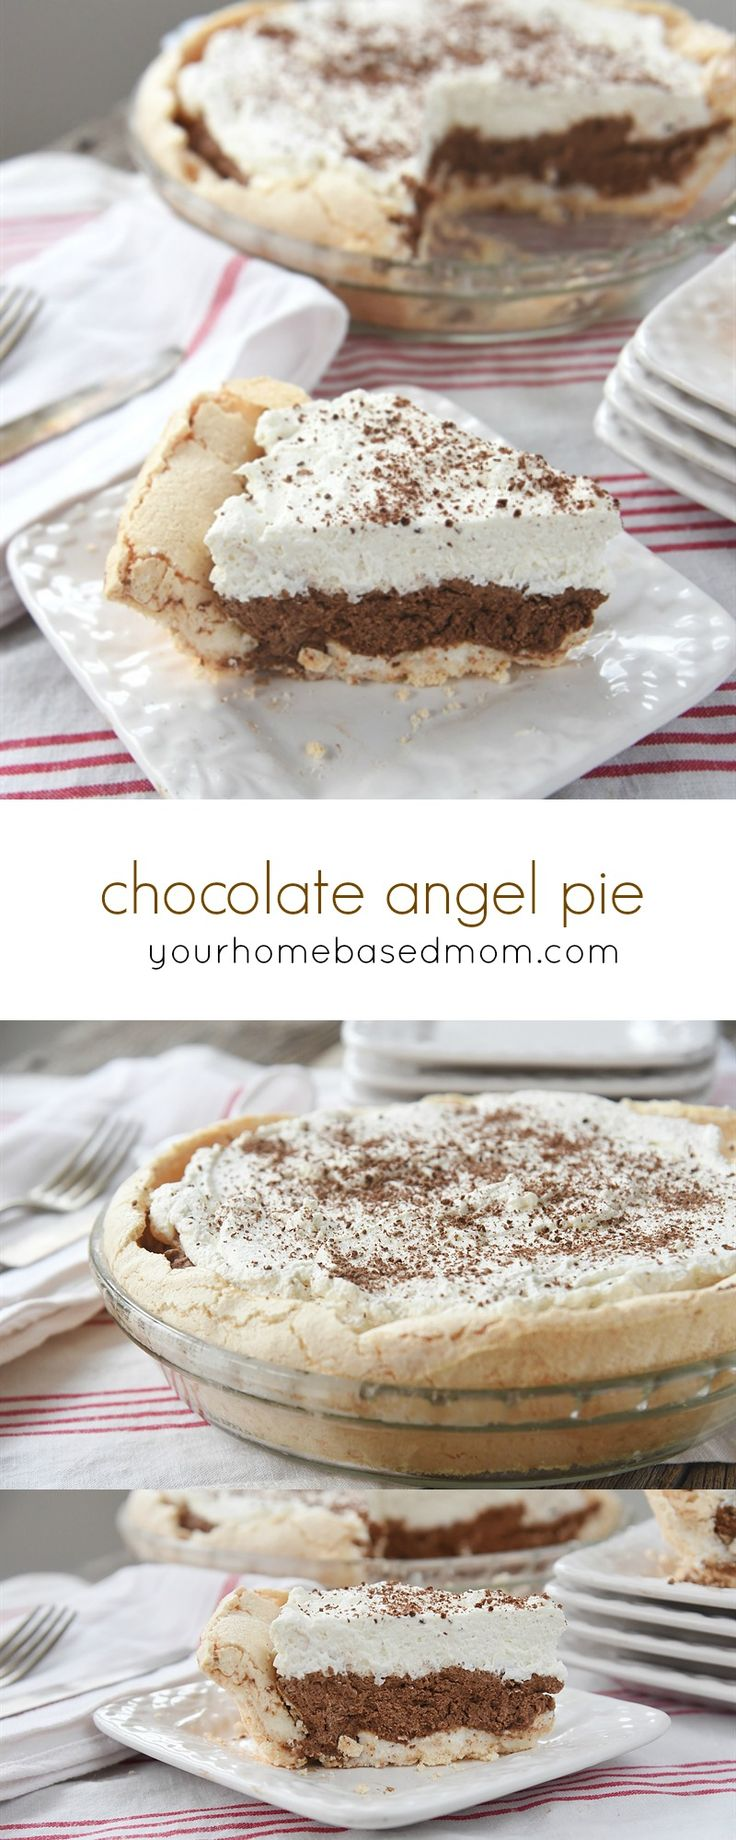 Chocolate Angel Pie Dessert Recipe - This is a bite of heaven on your fork!  Chocolate Angel Pie has a meringue crust filled with chocolate cream and topped with a whipped cream cloud.